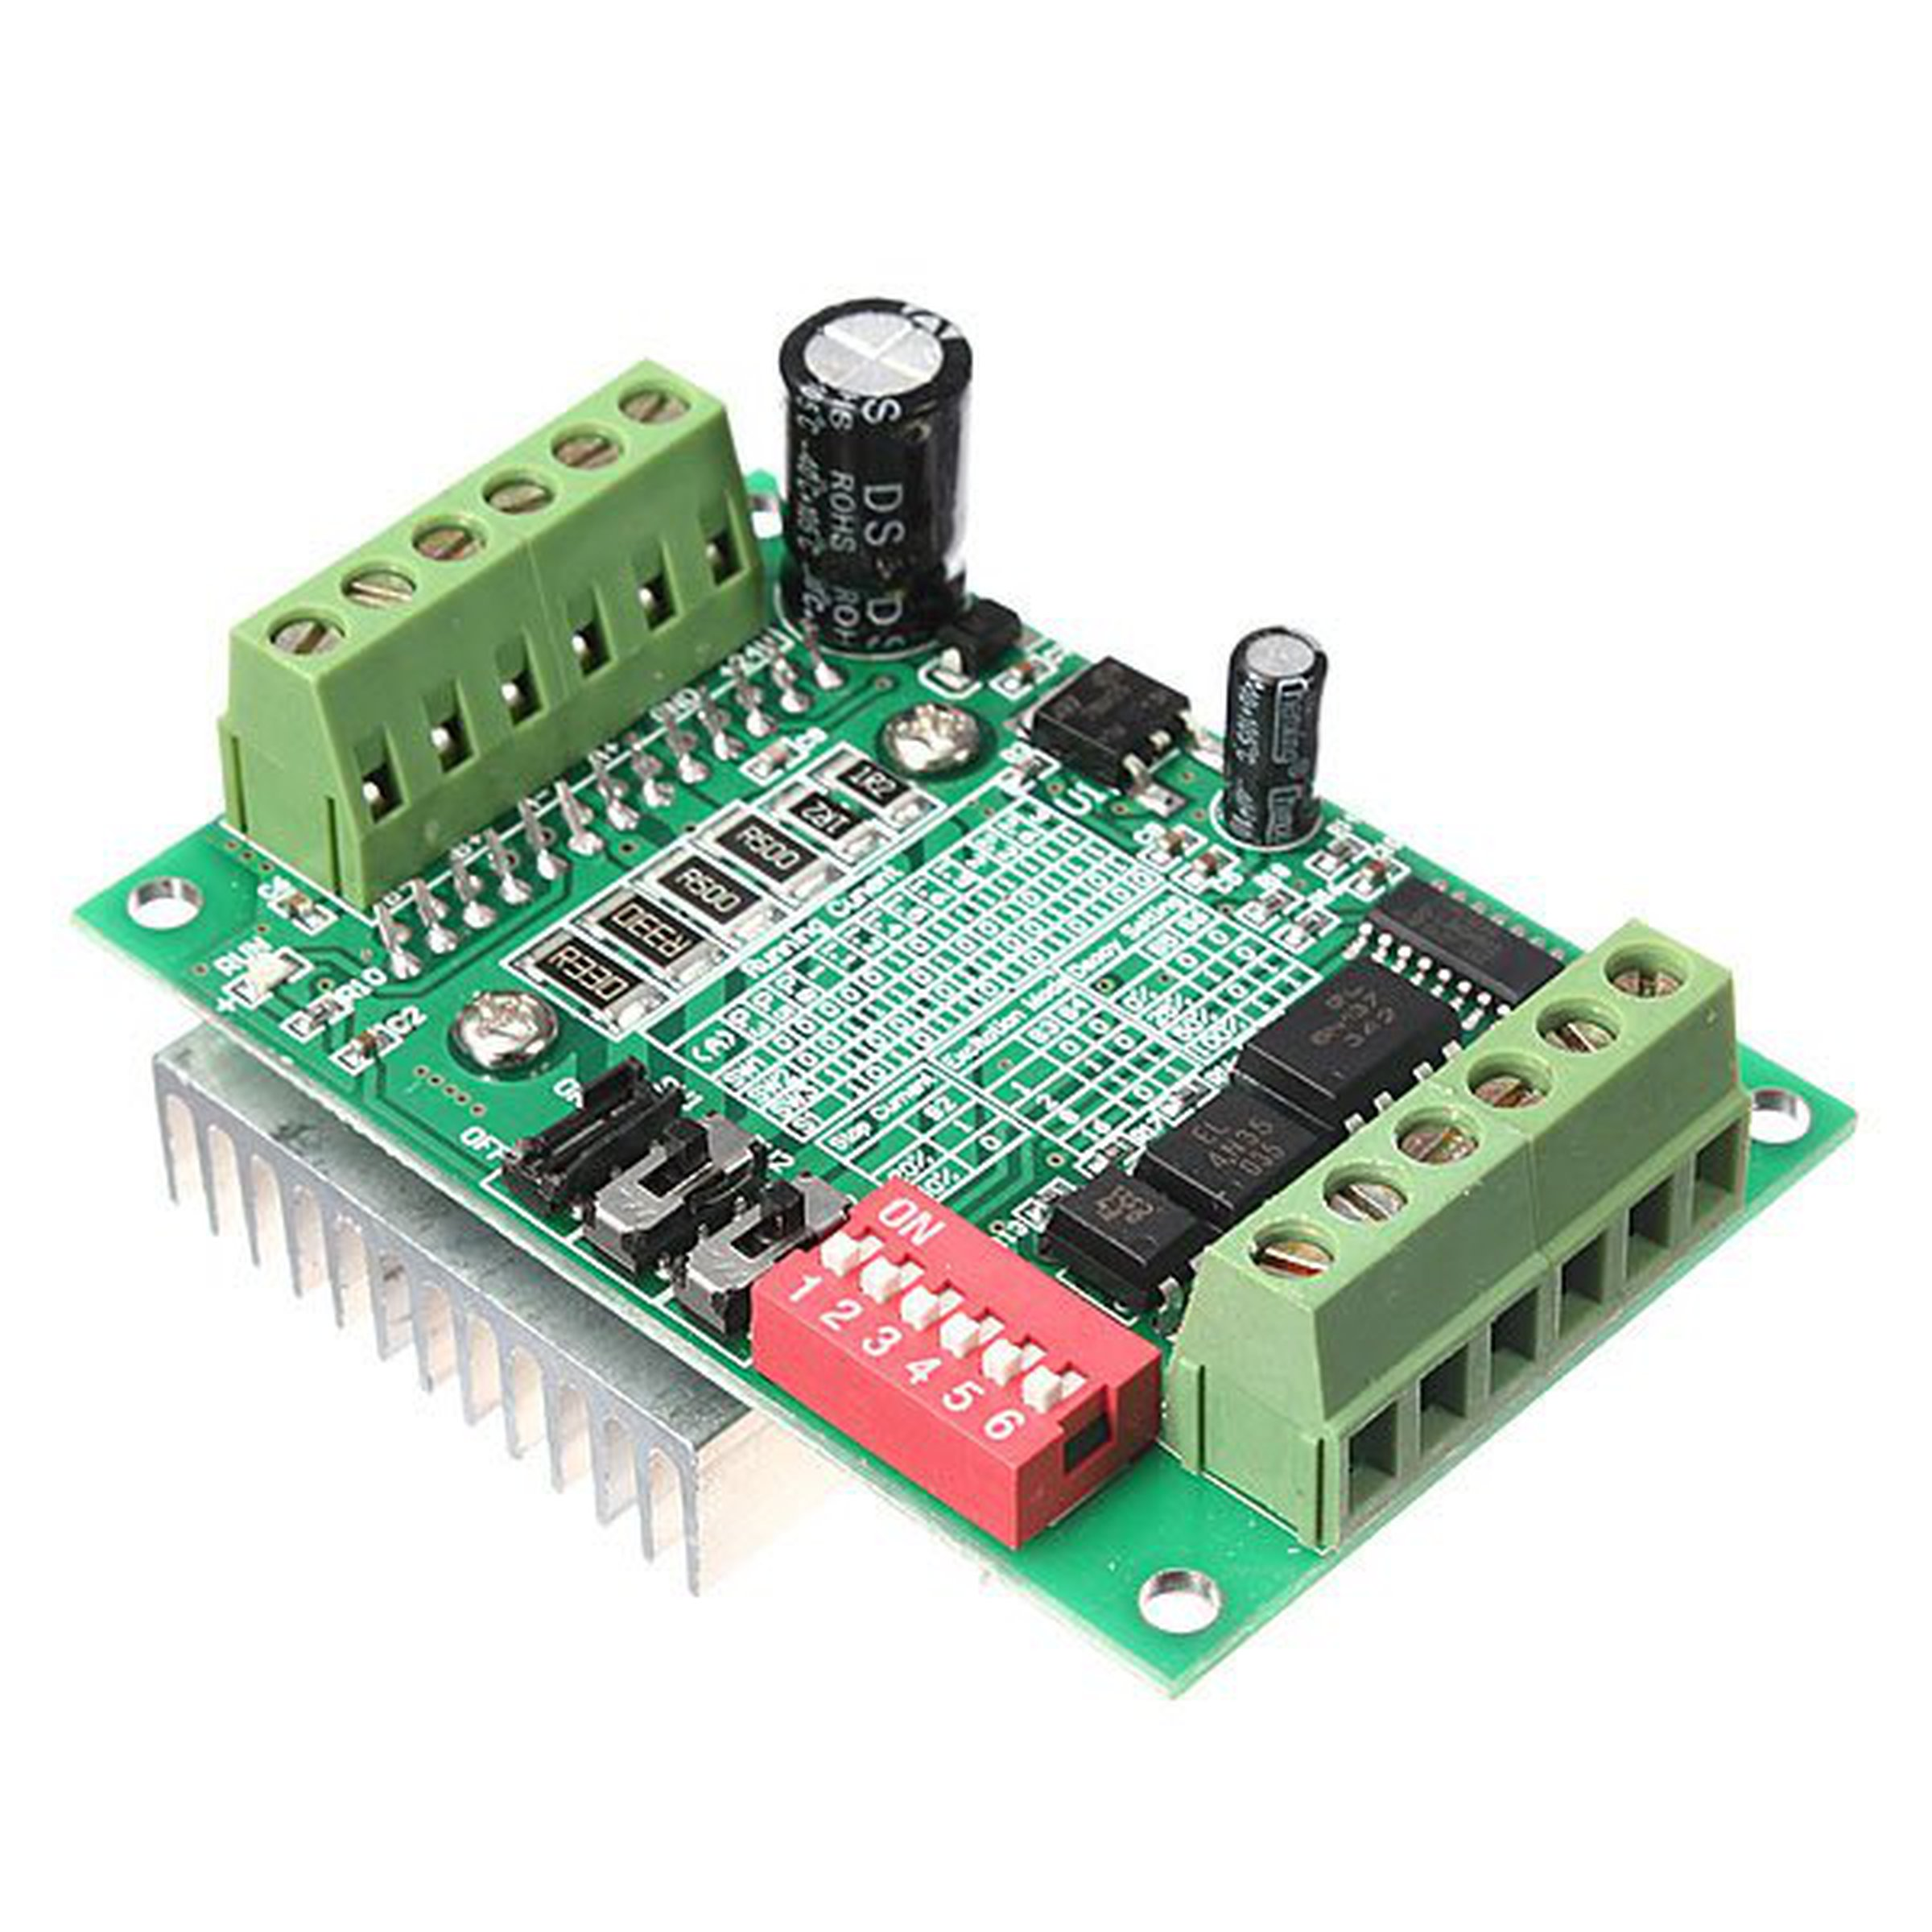 Cnc router 1 axis driver board from mmm999 on tindie for Cnc stepper motor controller